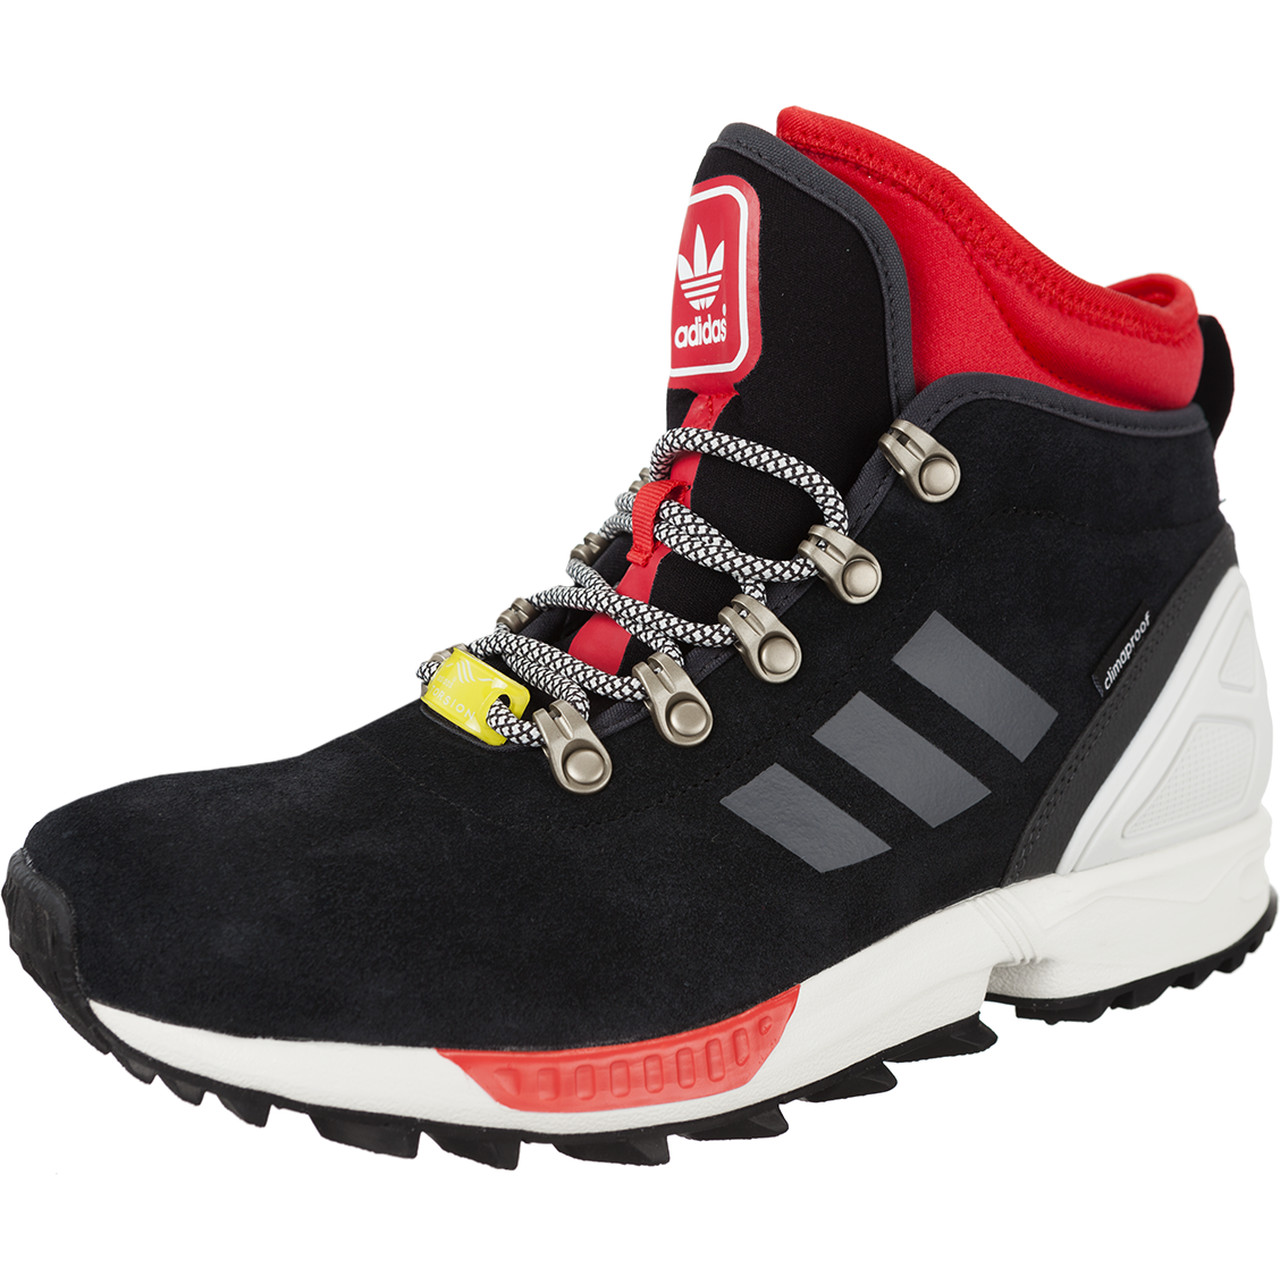 buty adidas zx flux winter 931 w sklepie. Black Bedroom Furniture Sets. Home Design Ideas